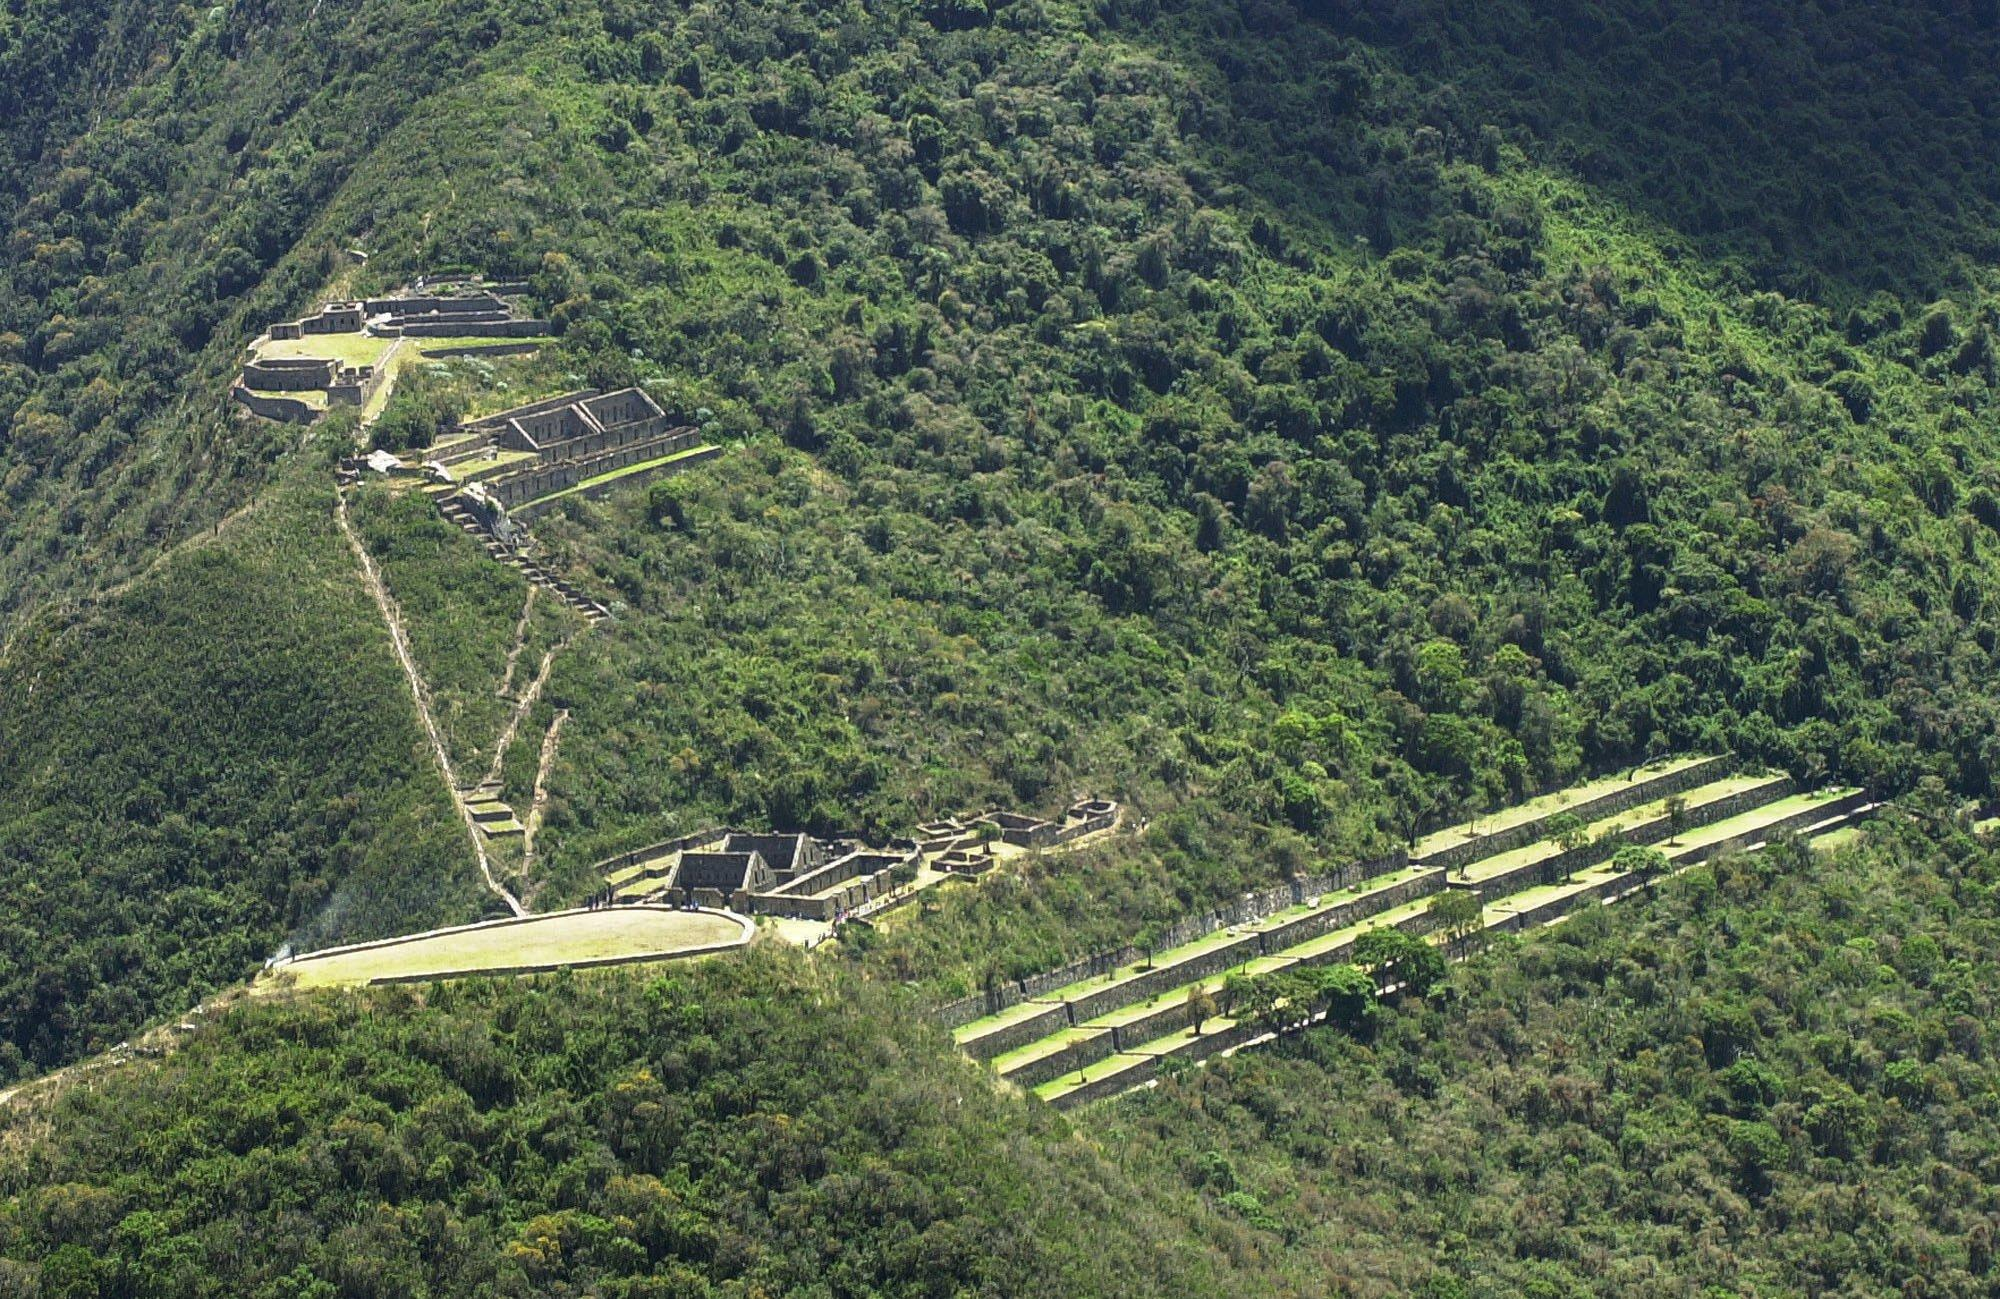 """FILE - This Oct. 1, 2003 file photo shows the Choquequirao ruins in Cusco, Peru. Choquequirao, which means """"cradle of gold"""" in Quechua, is believed to be the last refuge of Incan rulers who fled Cuzco after its leader Manco Inca was defeated by Spanish conquistadors. (AP Photo/Martin Mejia, File)"""